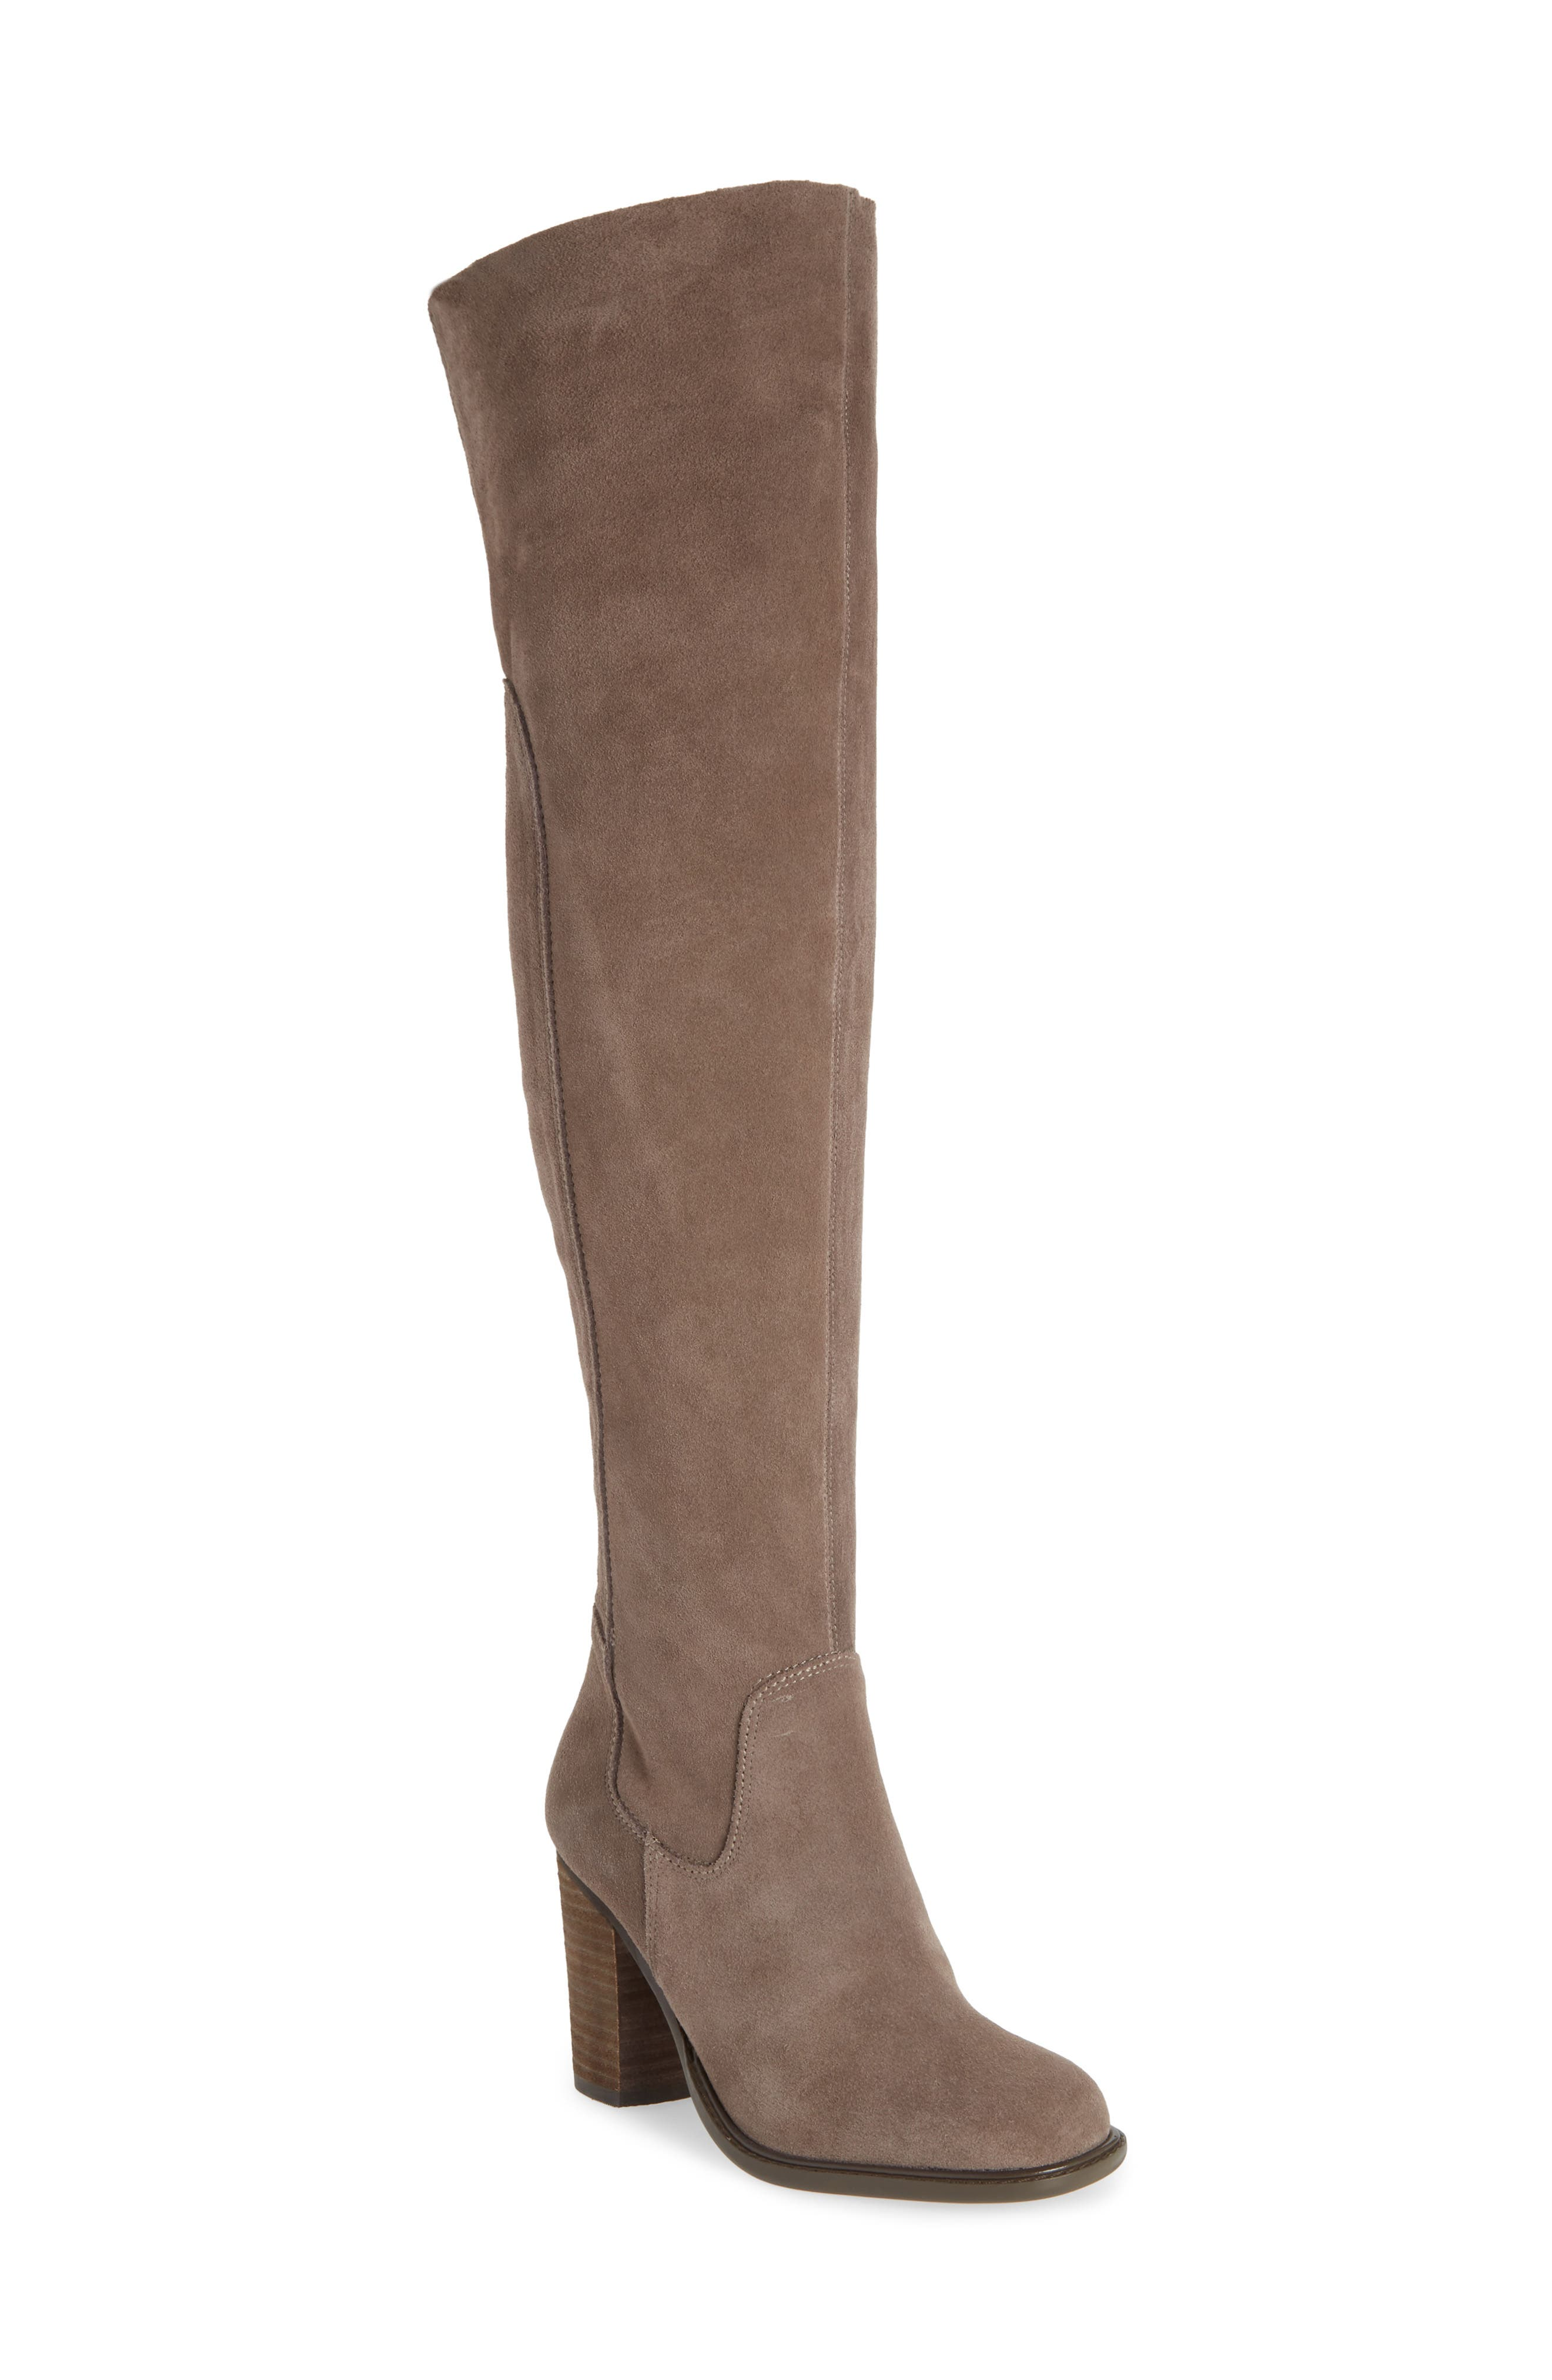 Logan Over the Knee Boot,                             Main thumbnail 1, color,                             WARM GREY SUEDE